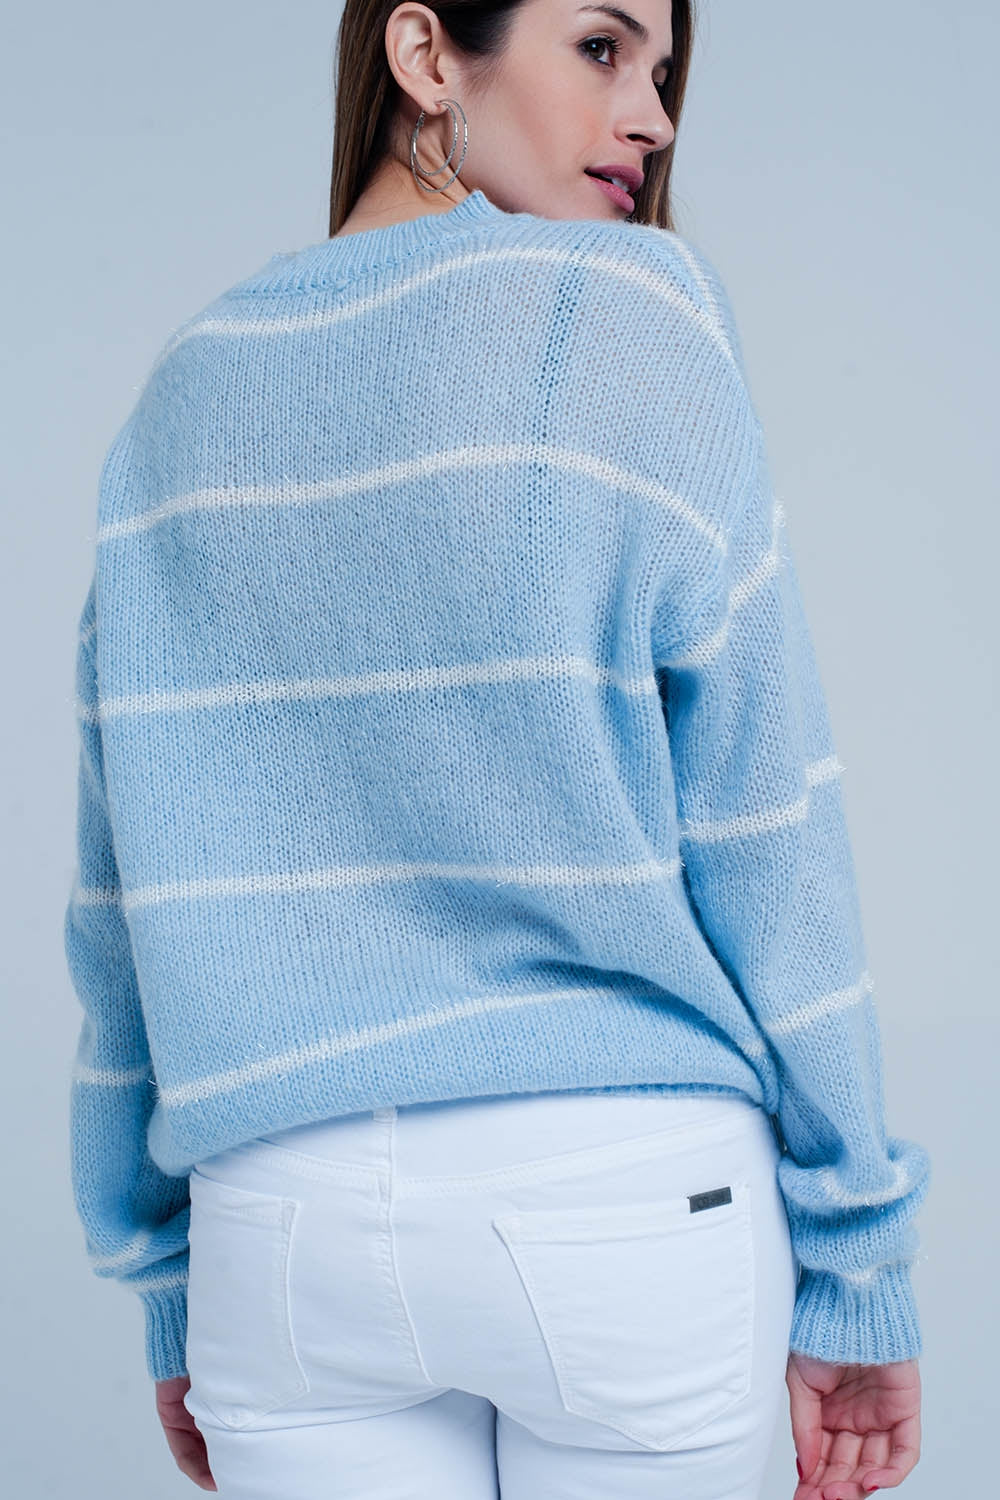 Blue Striped Crew Neck Sweater-Women - Apparel - Sweaters - Pull Over-Product Details Light blue with white striped jumper of a very strong and soft mix of acryl wool and mohair fabrics. The pullover has a round closed neck and long sleeves with on the hip a metal pleated Q2 logo attached.-Keyomi-Sook